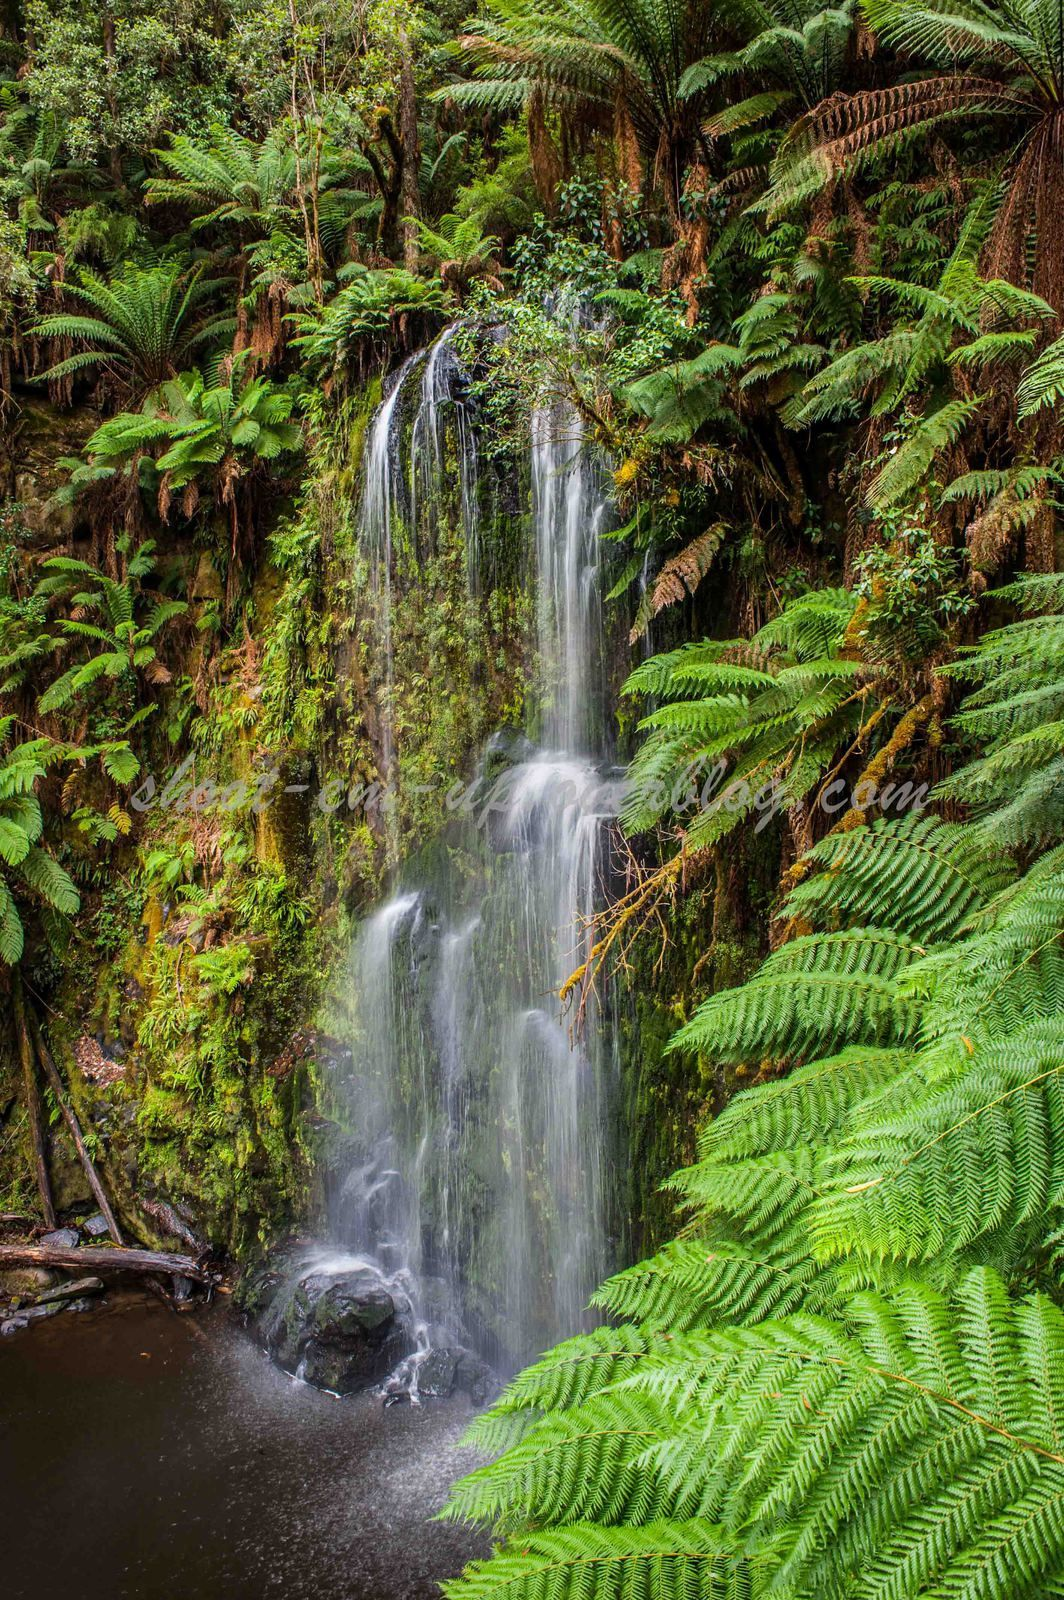 Day 2 : Great Otway National Park